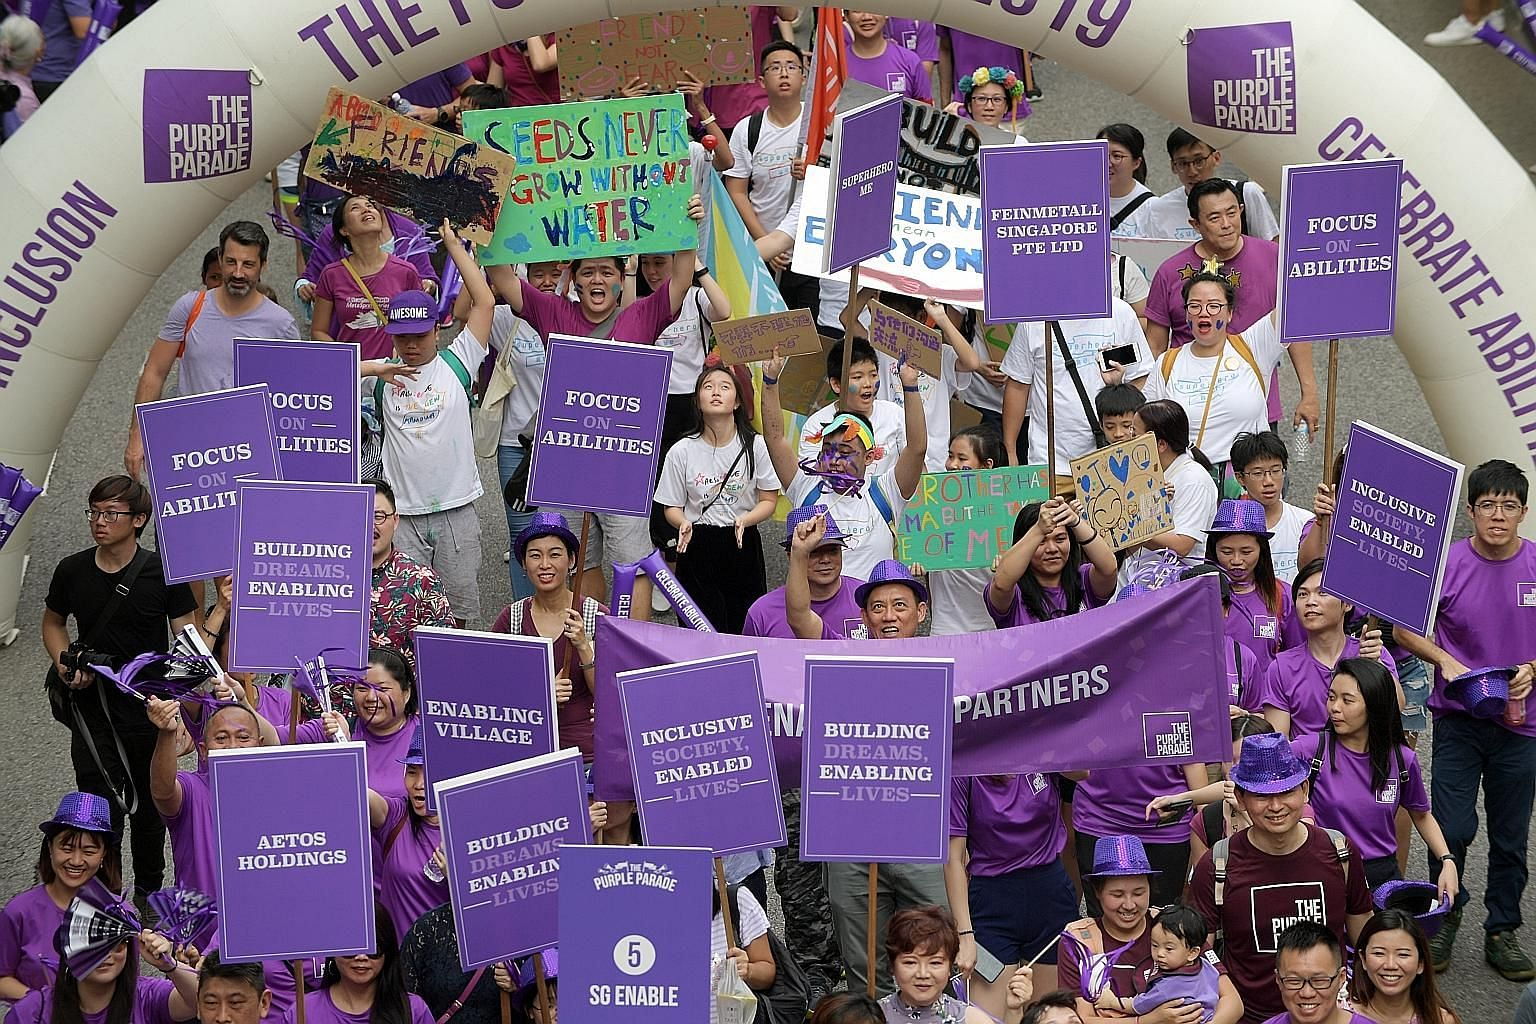 The Purple Parade, an annual event that celebrates the abilities of people with special needs, saw more than 10,000 participants taking part this year at Suntec City. Besides a carnival and a concert, the event also featured dialogues for those with